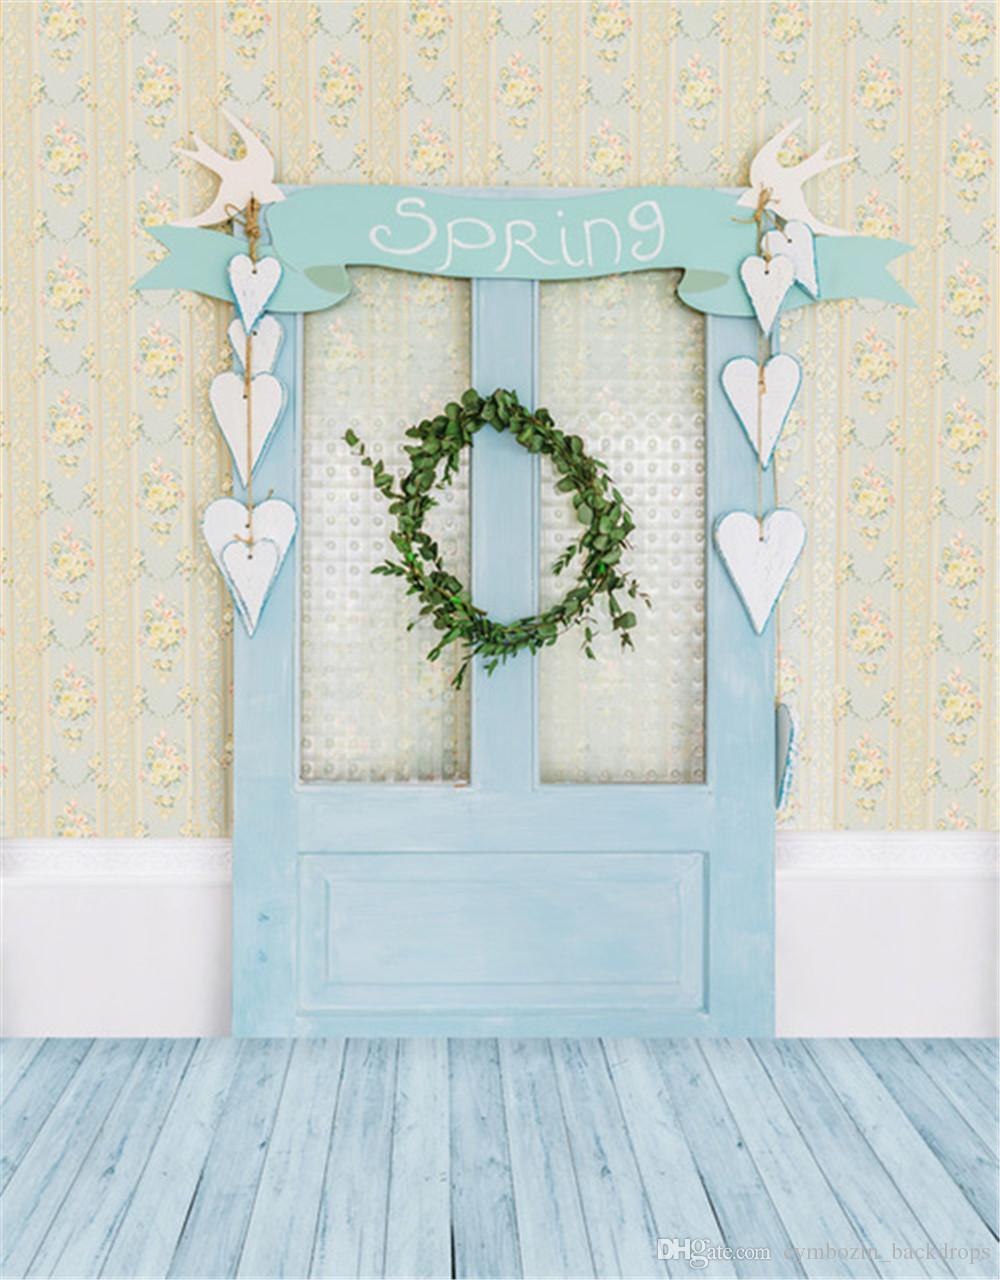 Light Blue Wooden Door Photography Backdrops Wood Floor Printed Love Heart Decors Green Leaves Wreath Baby Kids Photo Backgrounds for Studio